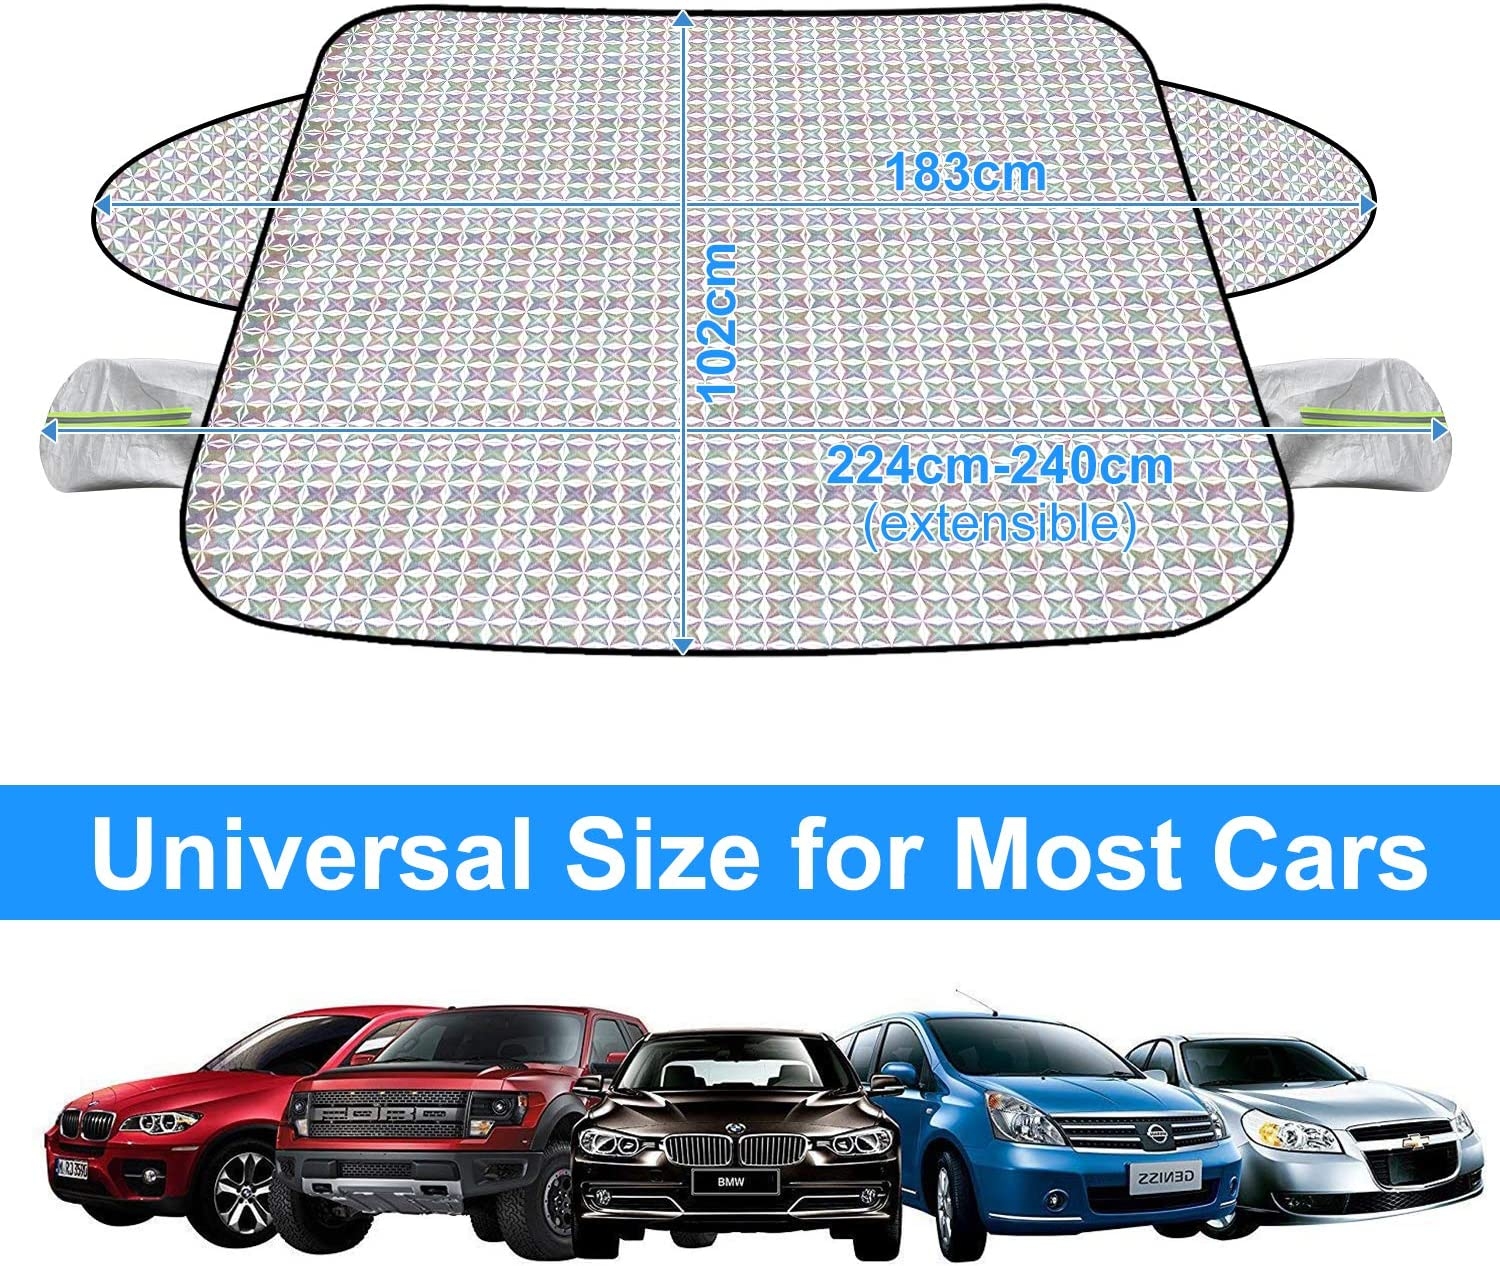 Cotton Thicker Windscreen Snow Cover with Rearview Mirror Protector Fits Most Cars KKTICK Car Windshield Snow Cover, Upgraded Version Waterproof Windshield Winter Cover for Snow Ice Frost